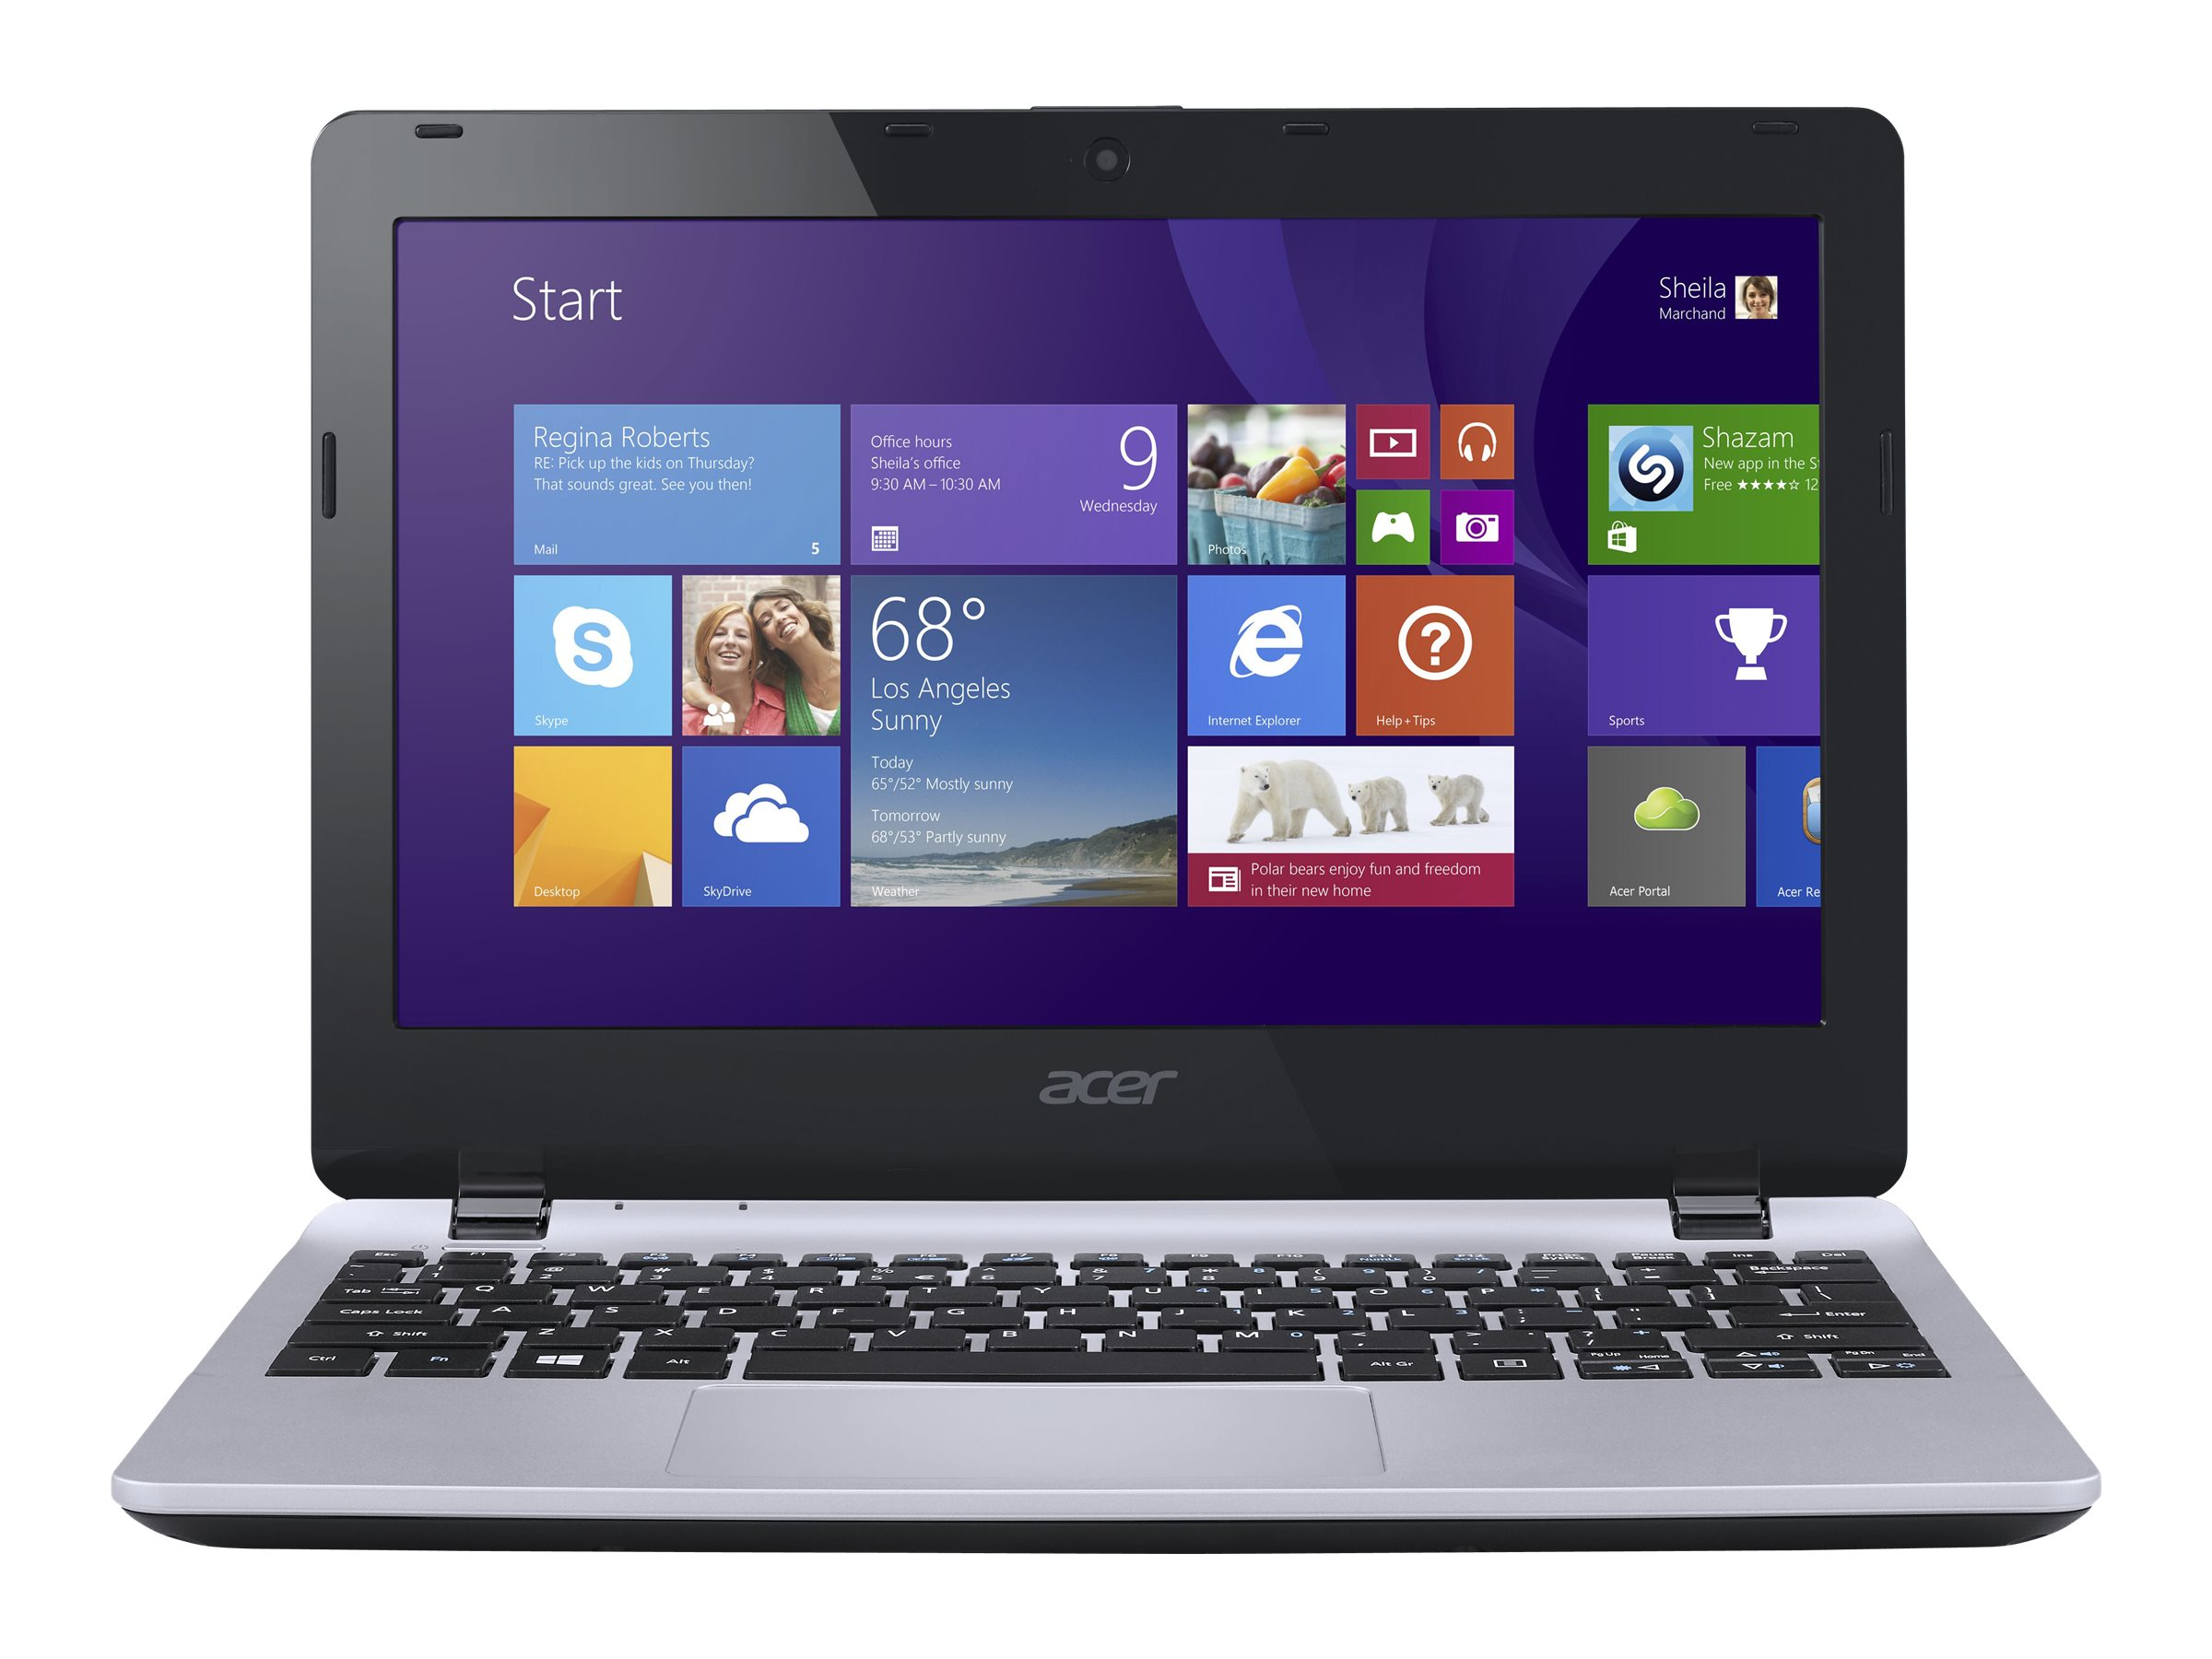 Acer Aspire E3-111-C0QT 1.83GHz Celeron 11.6in display, NX.MQVAA.001